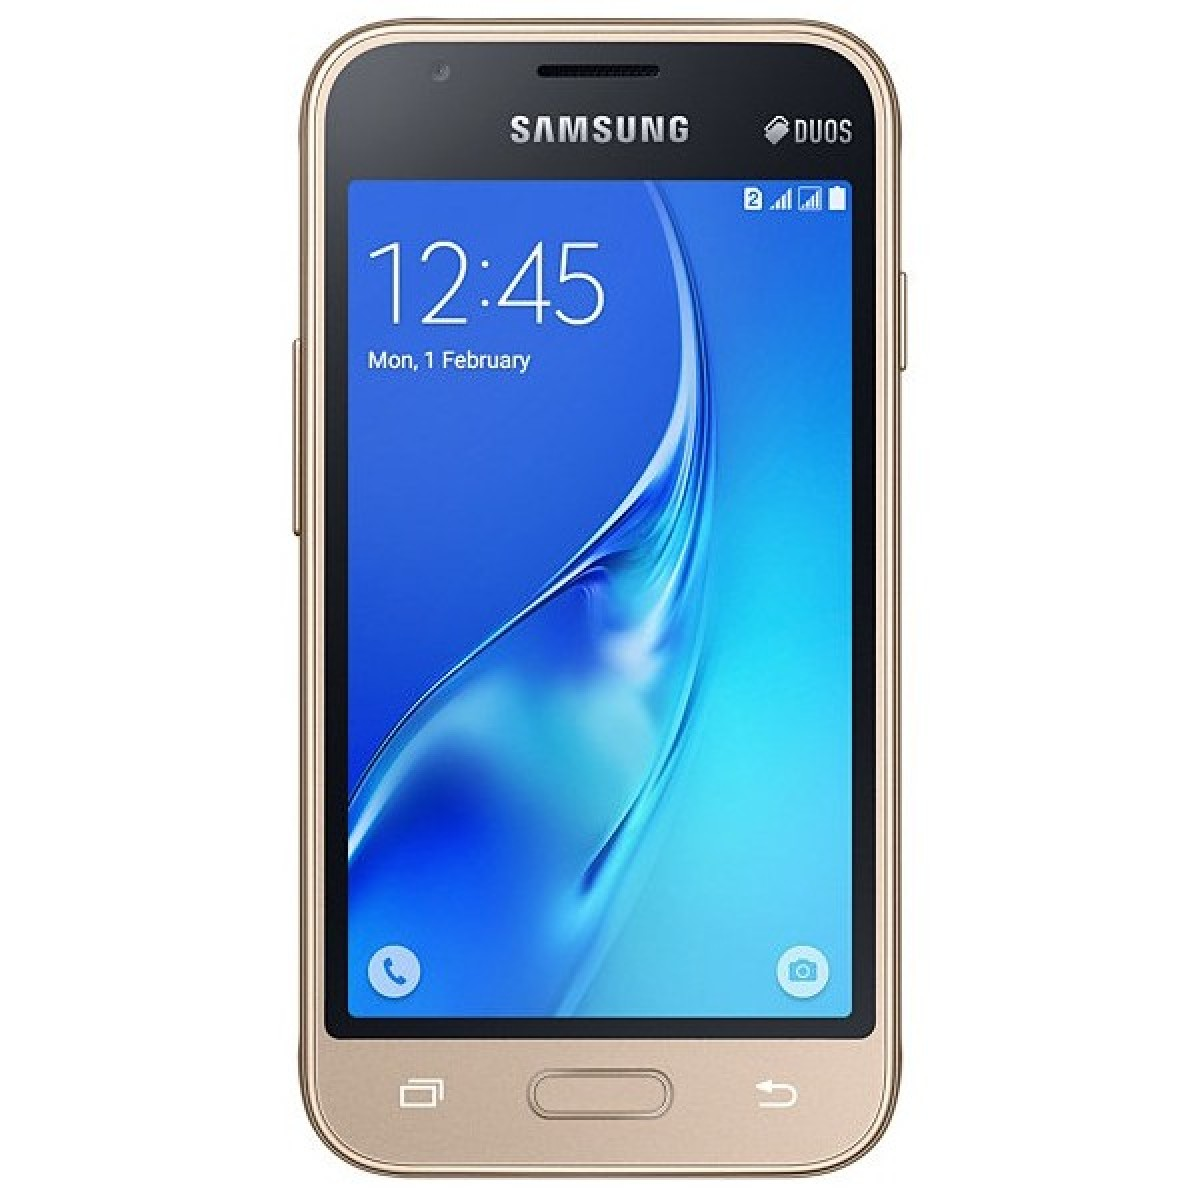 SAMSUNG Smartphone GALAXY J1 MINI SM-105HD 3